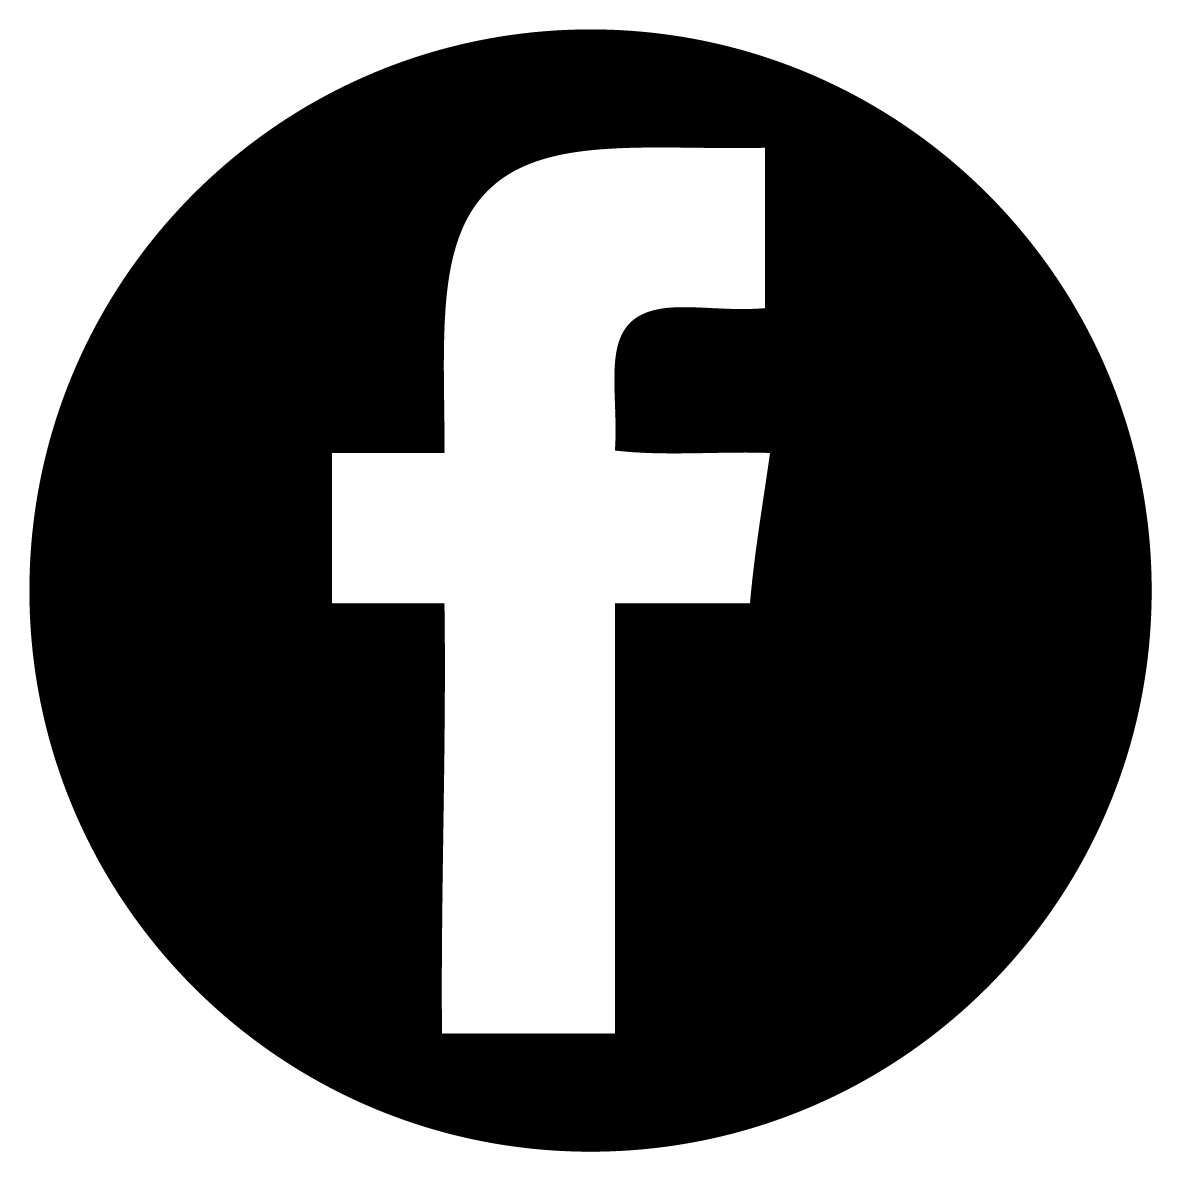 La pagina Facebook ufficiale di Necronomicon.it